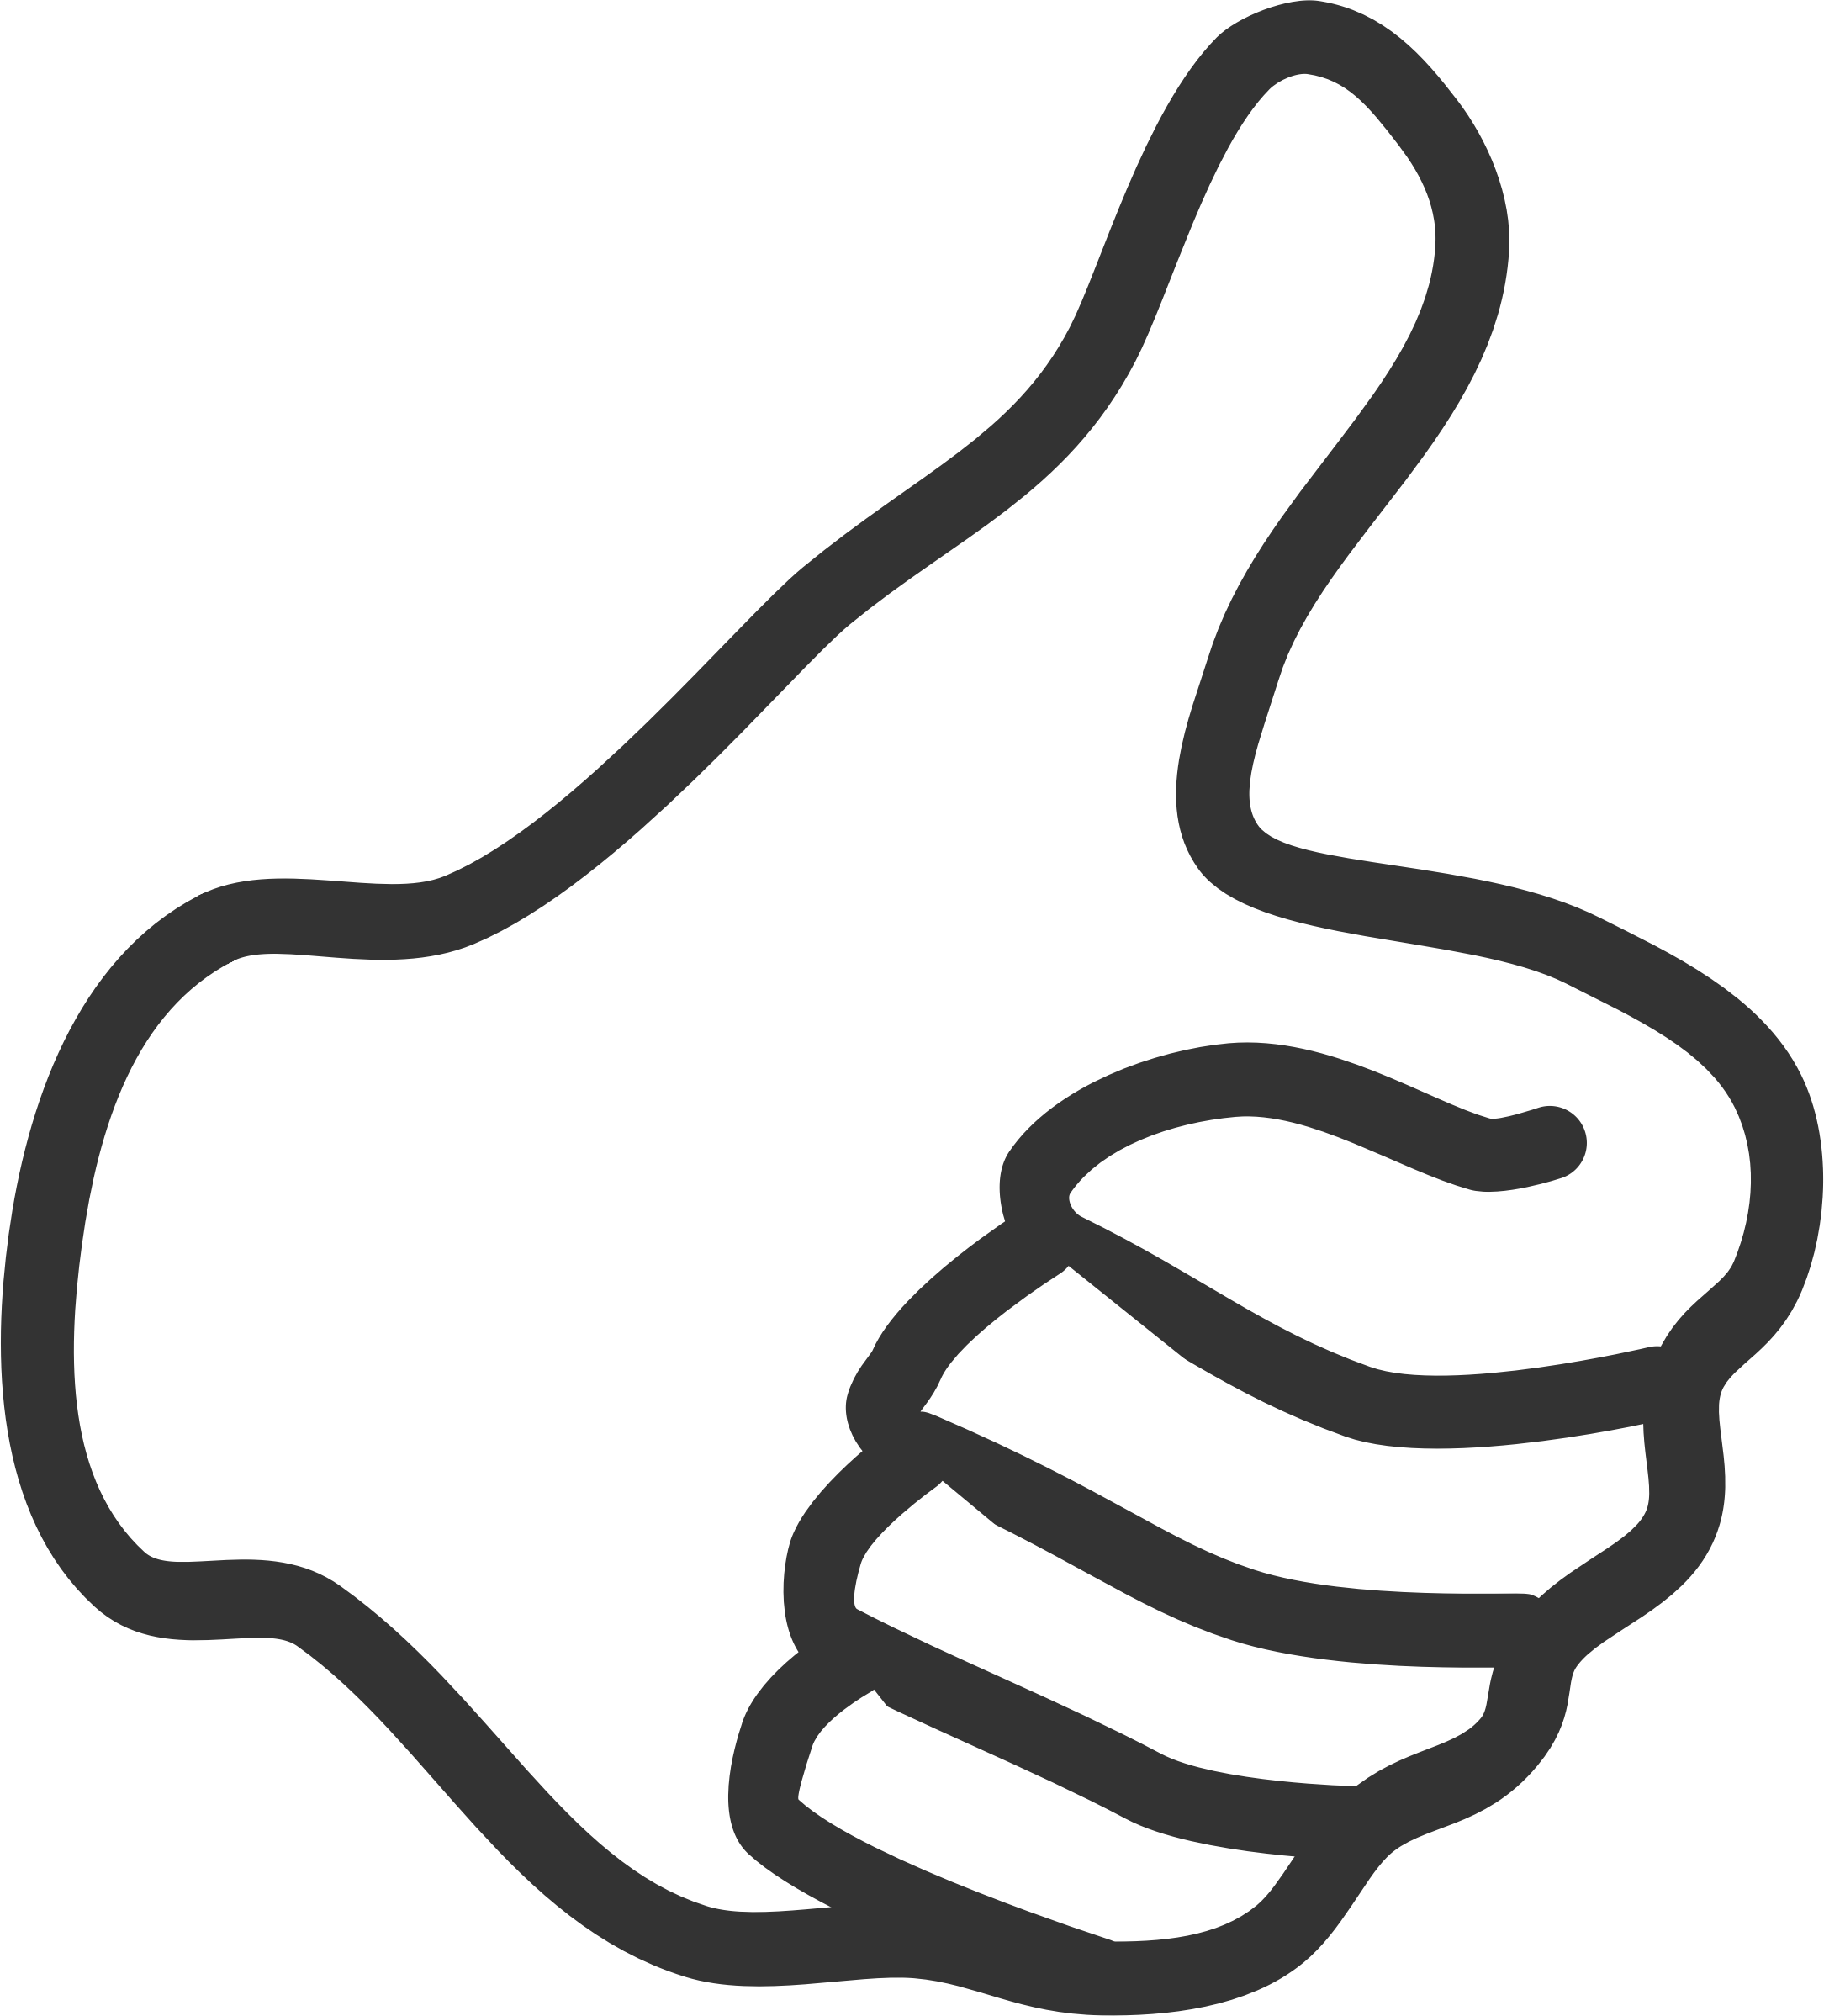 Thumbs up up clipart.